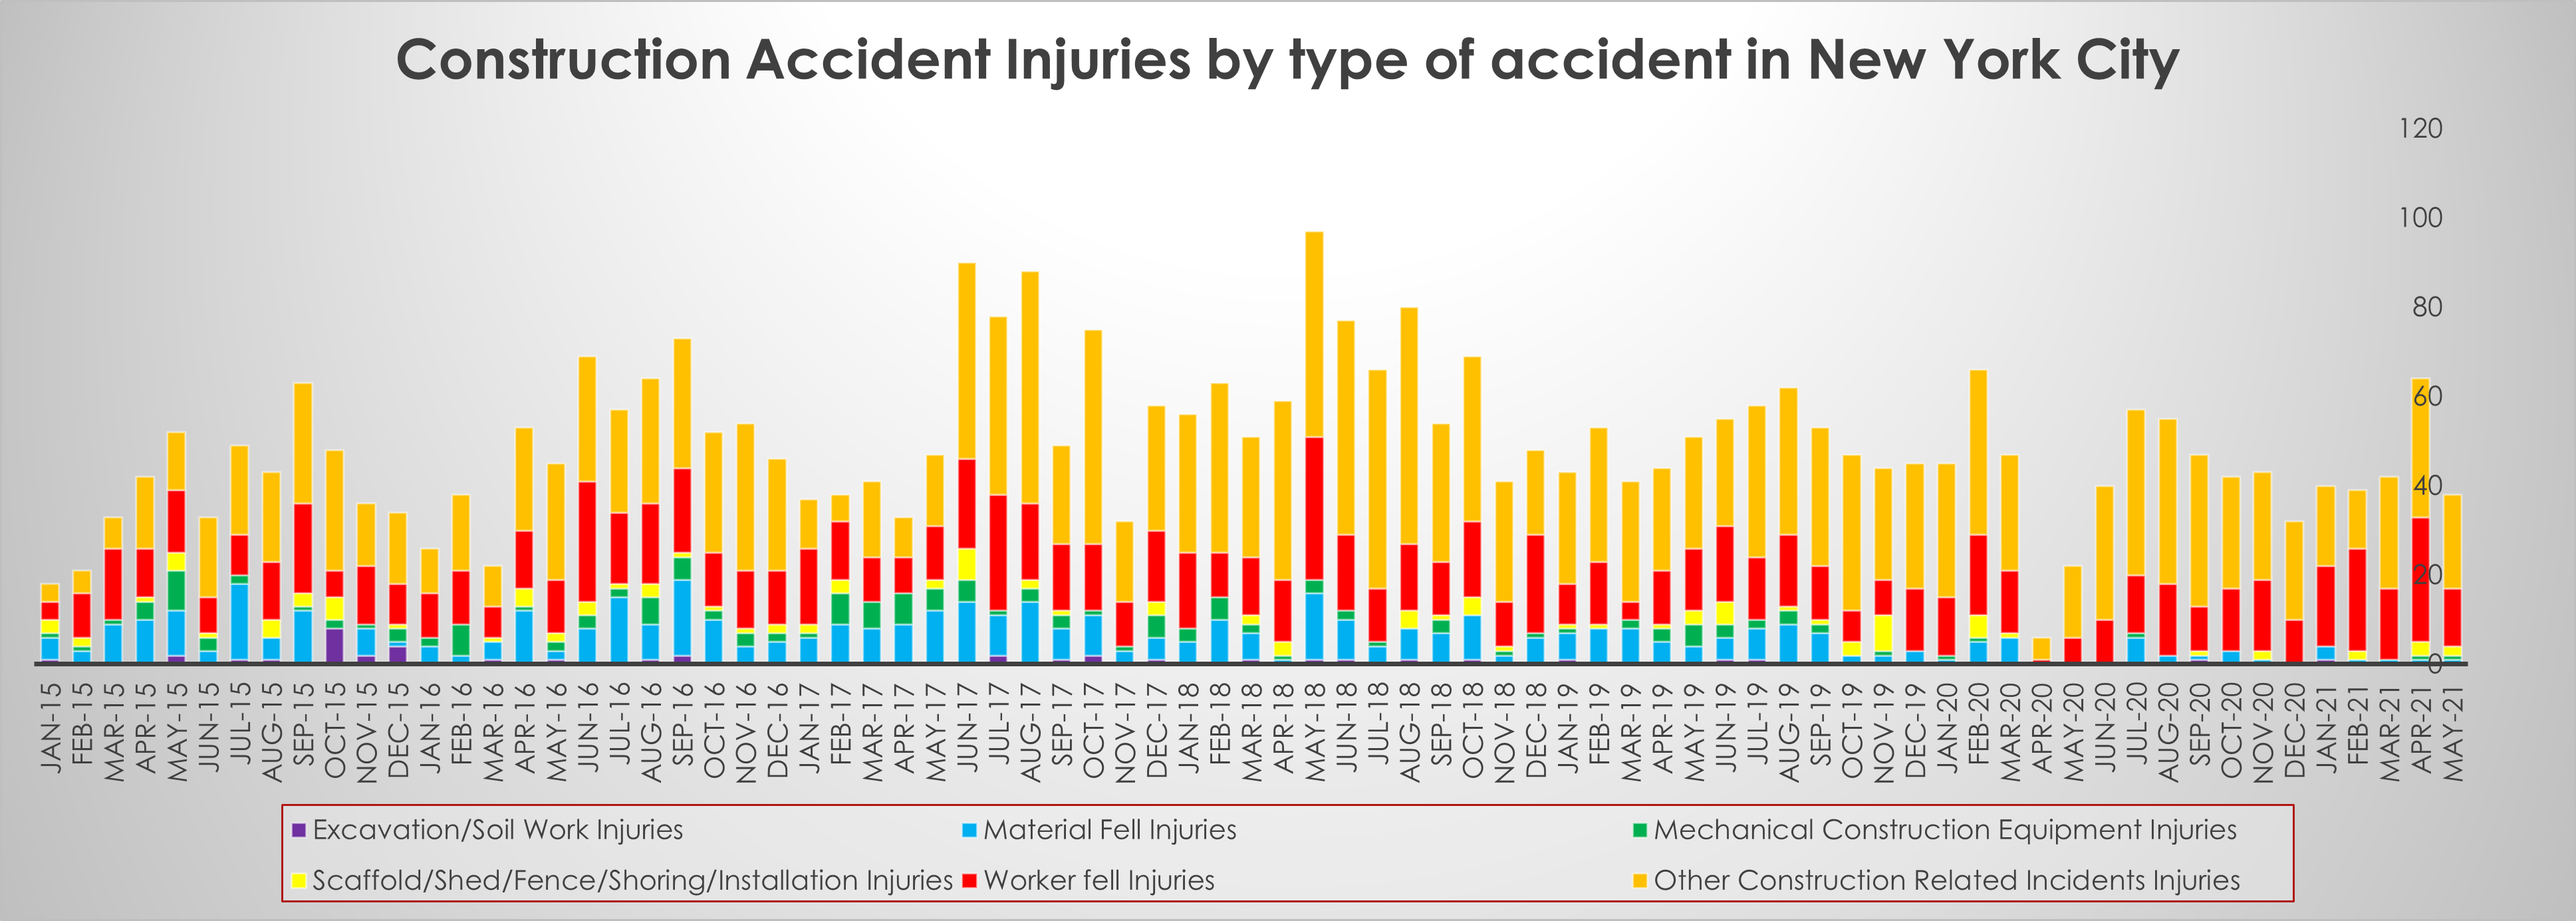 New York hard hat injuries by type of accident May 2021